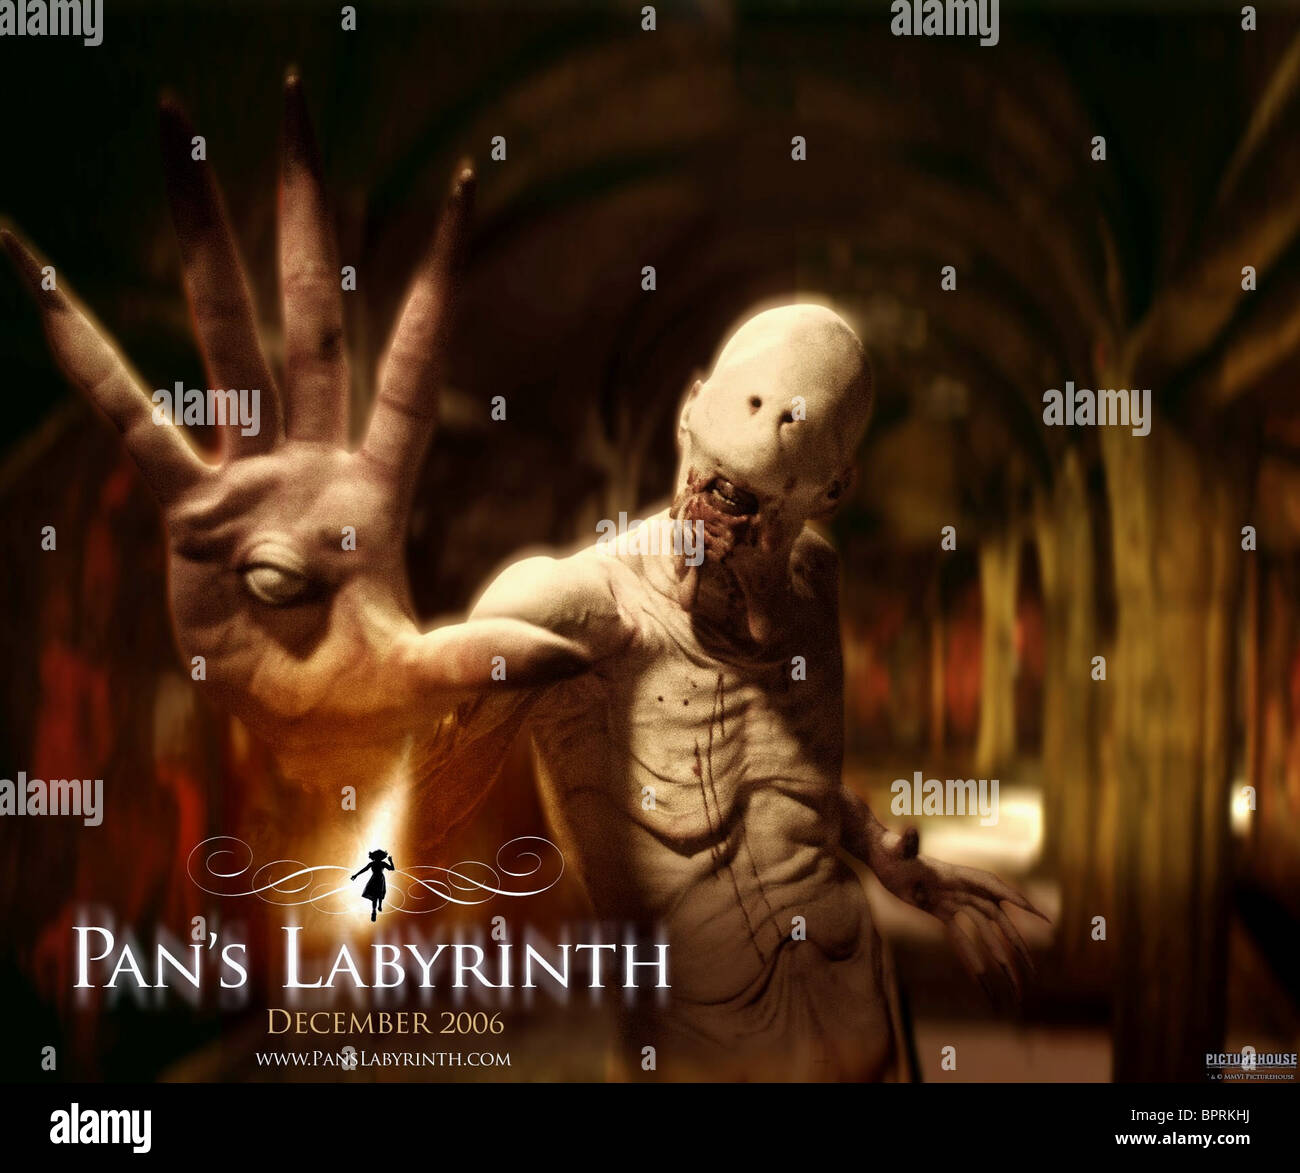 The Pale Man Film Title Pans Labyrinth Stock Photos & The ...